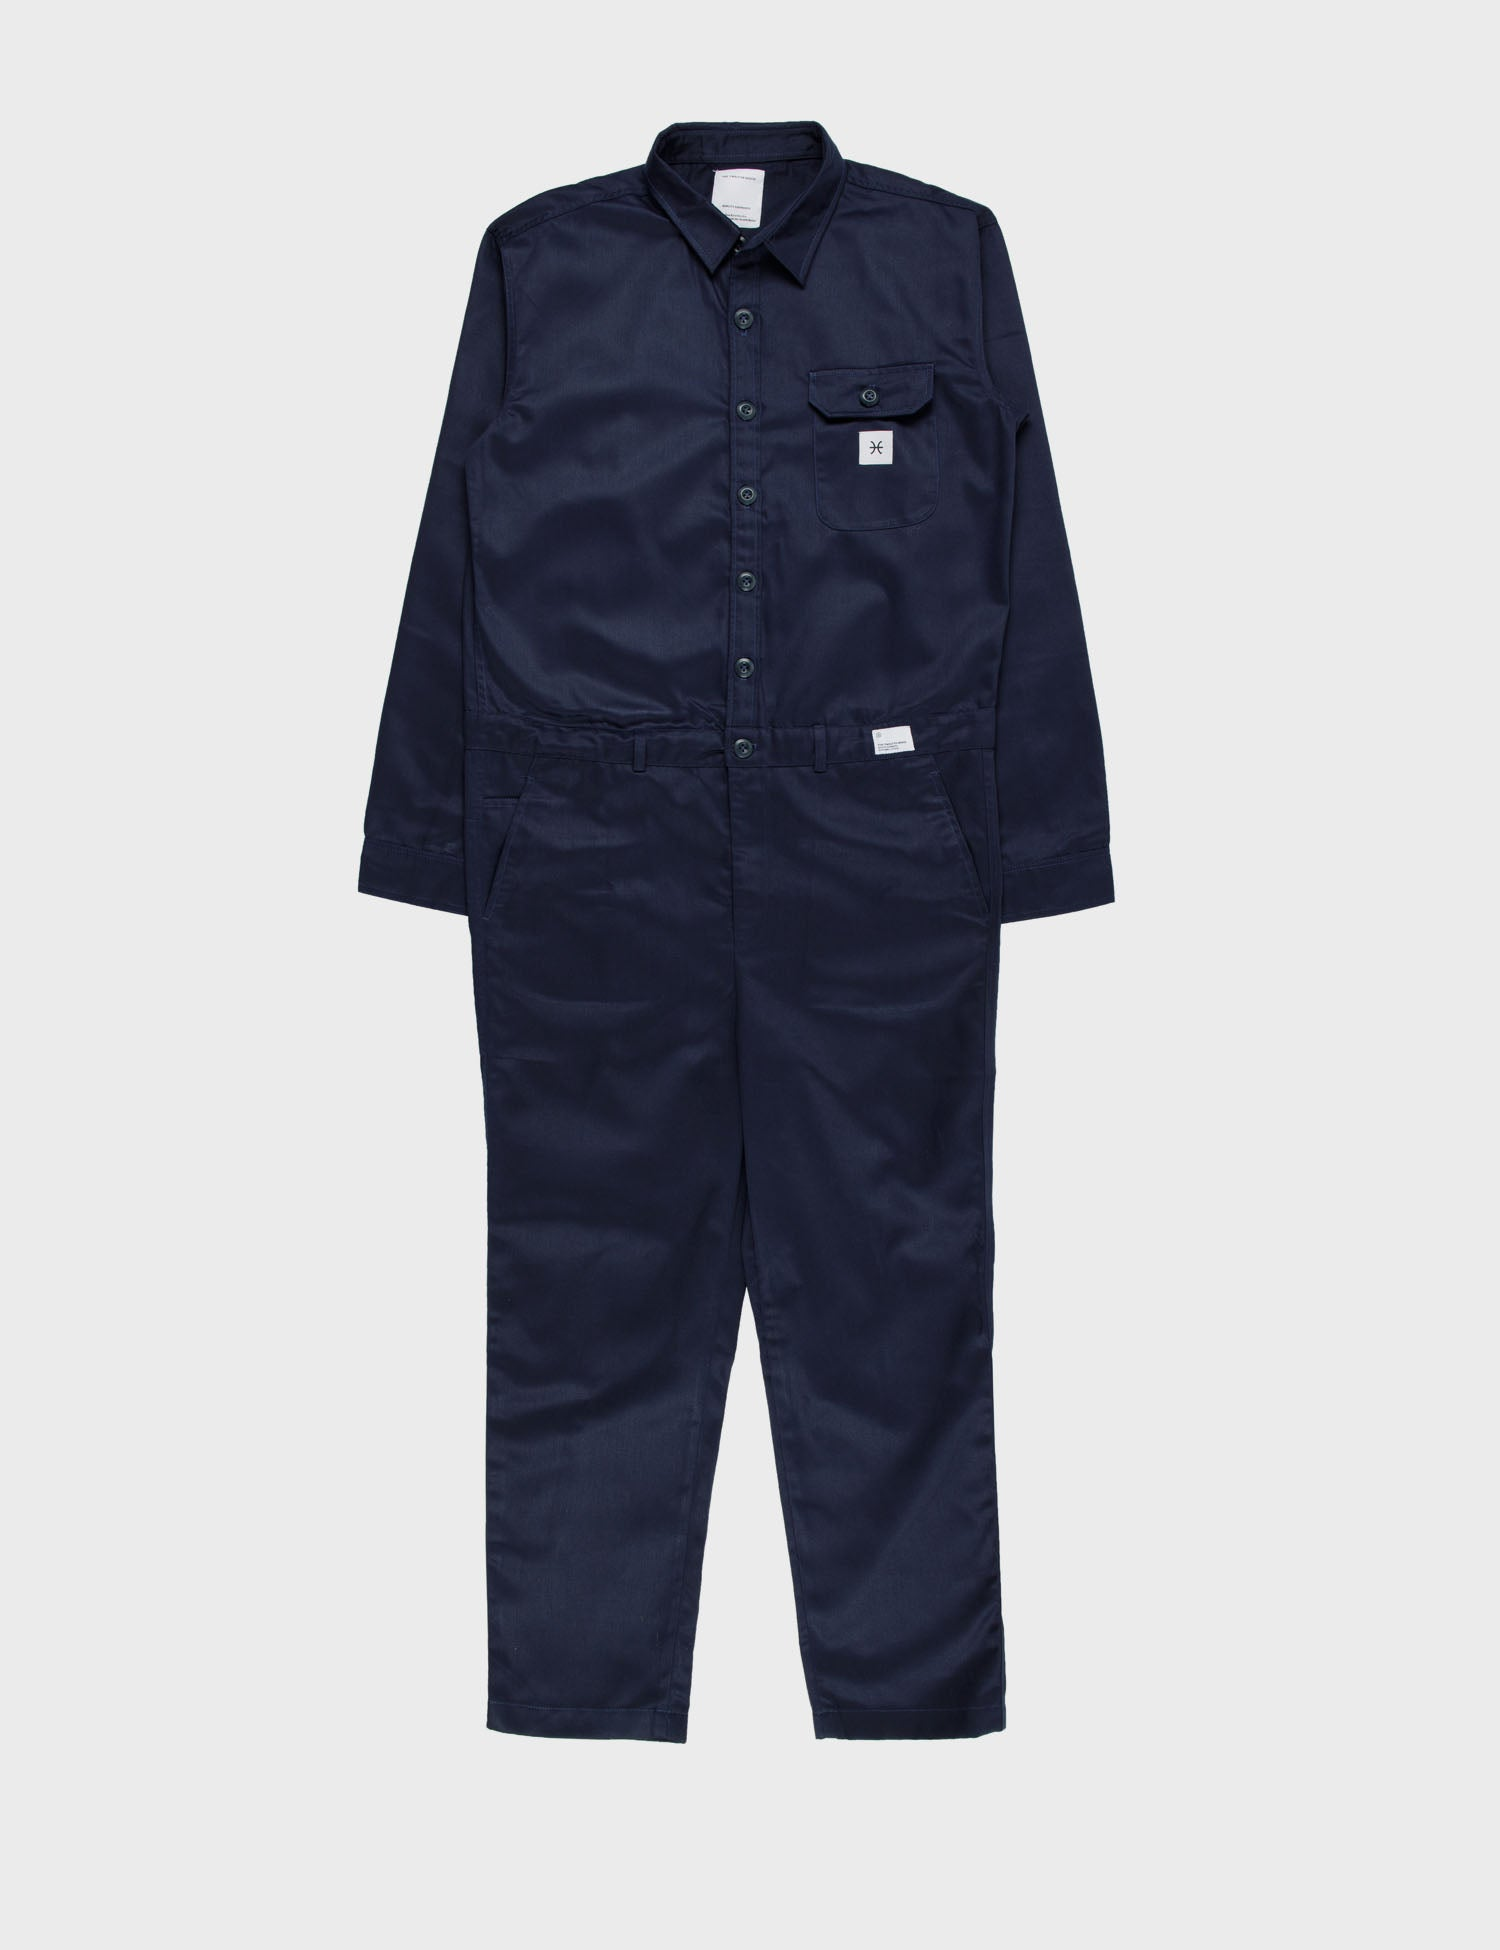 products/12H-coverall-navy.jpg